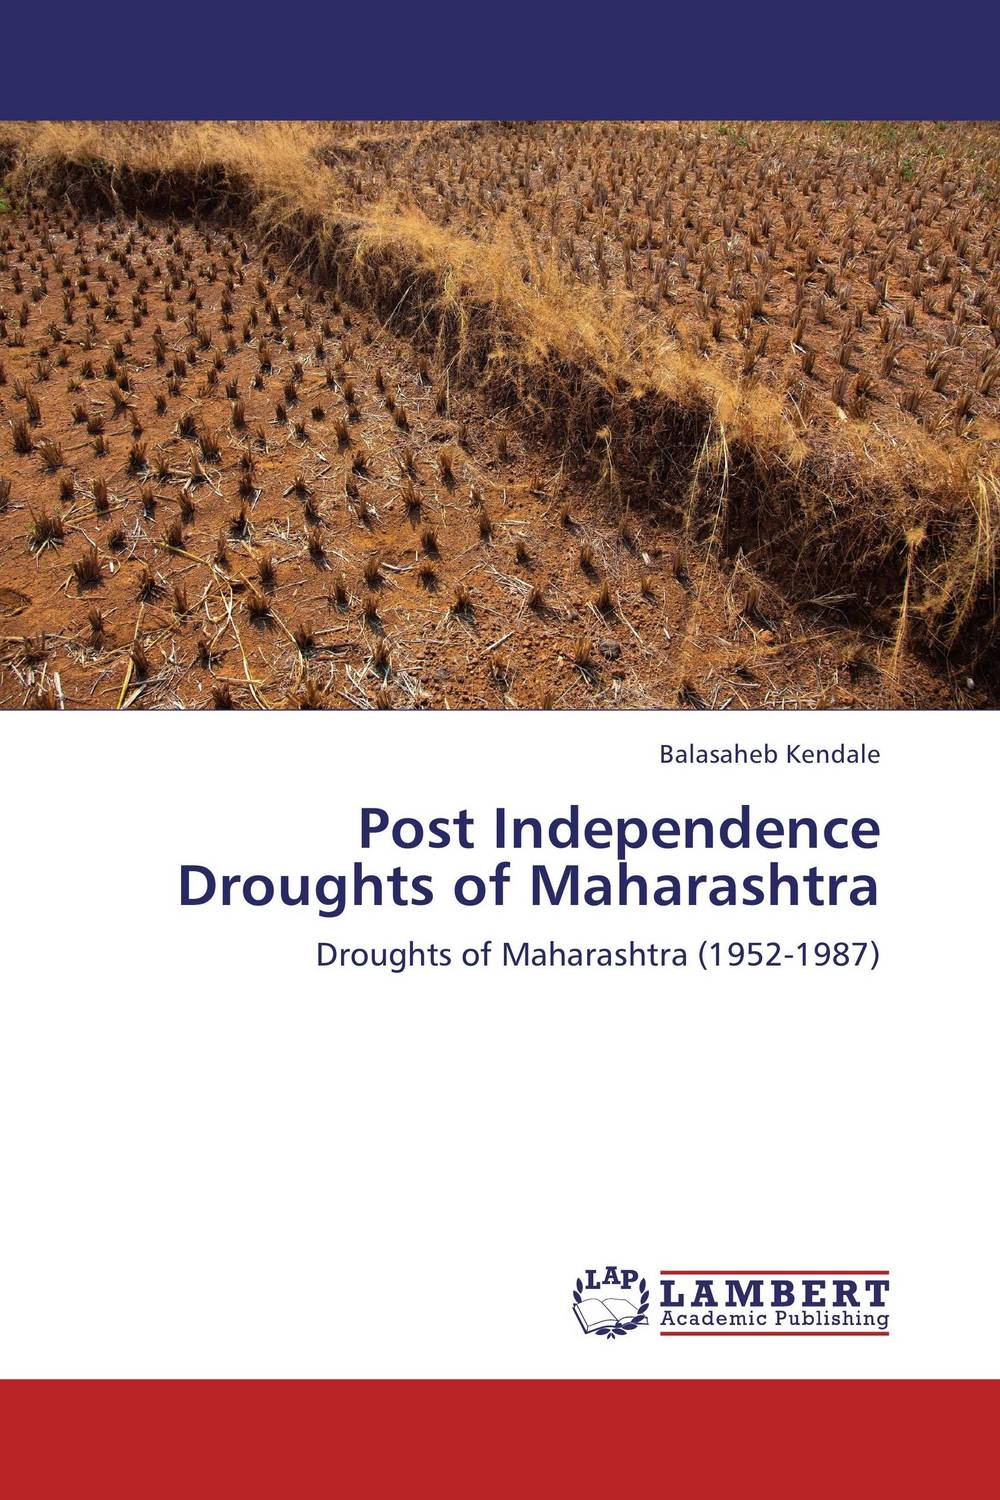 Post Independence Droughts of Maharashtra jagaran and gondhal understanding art and culture of maharashtra